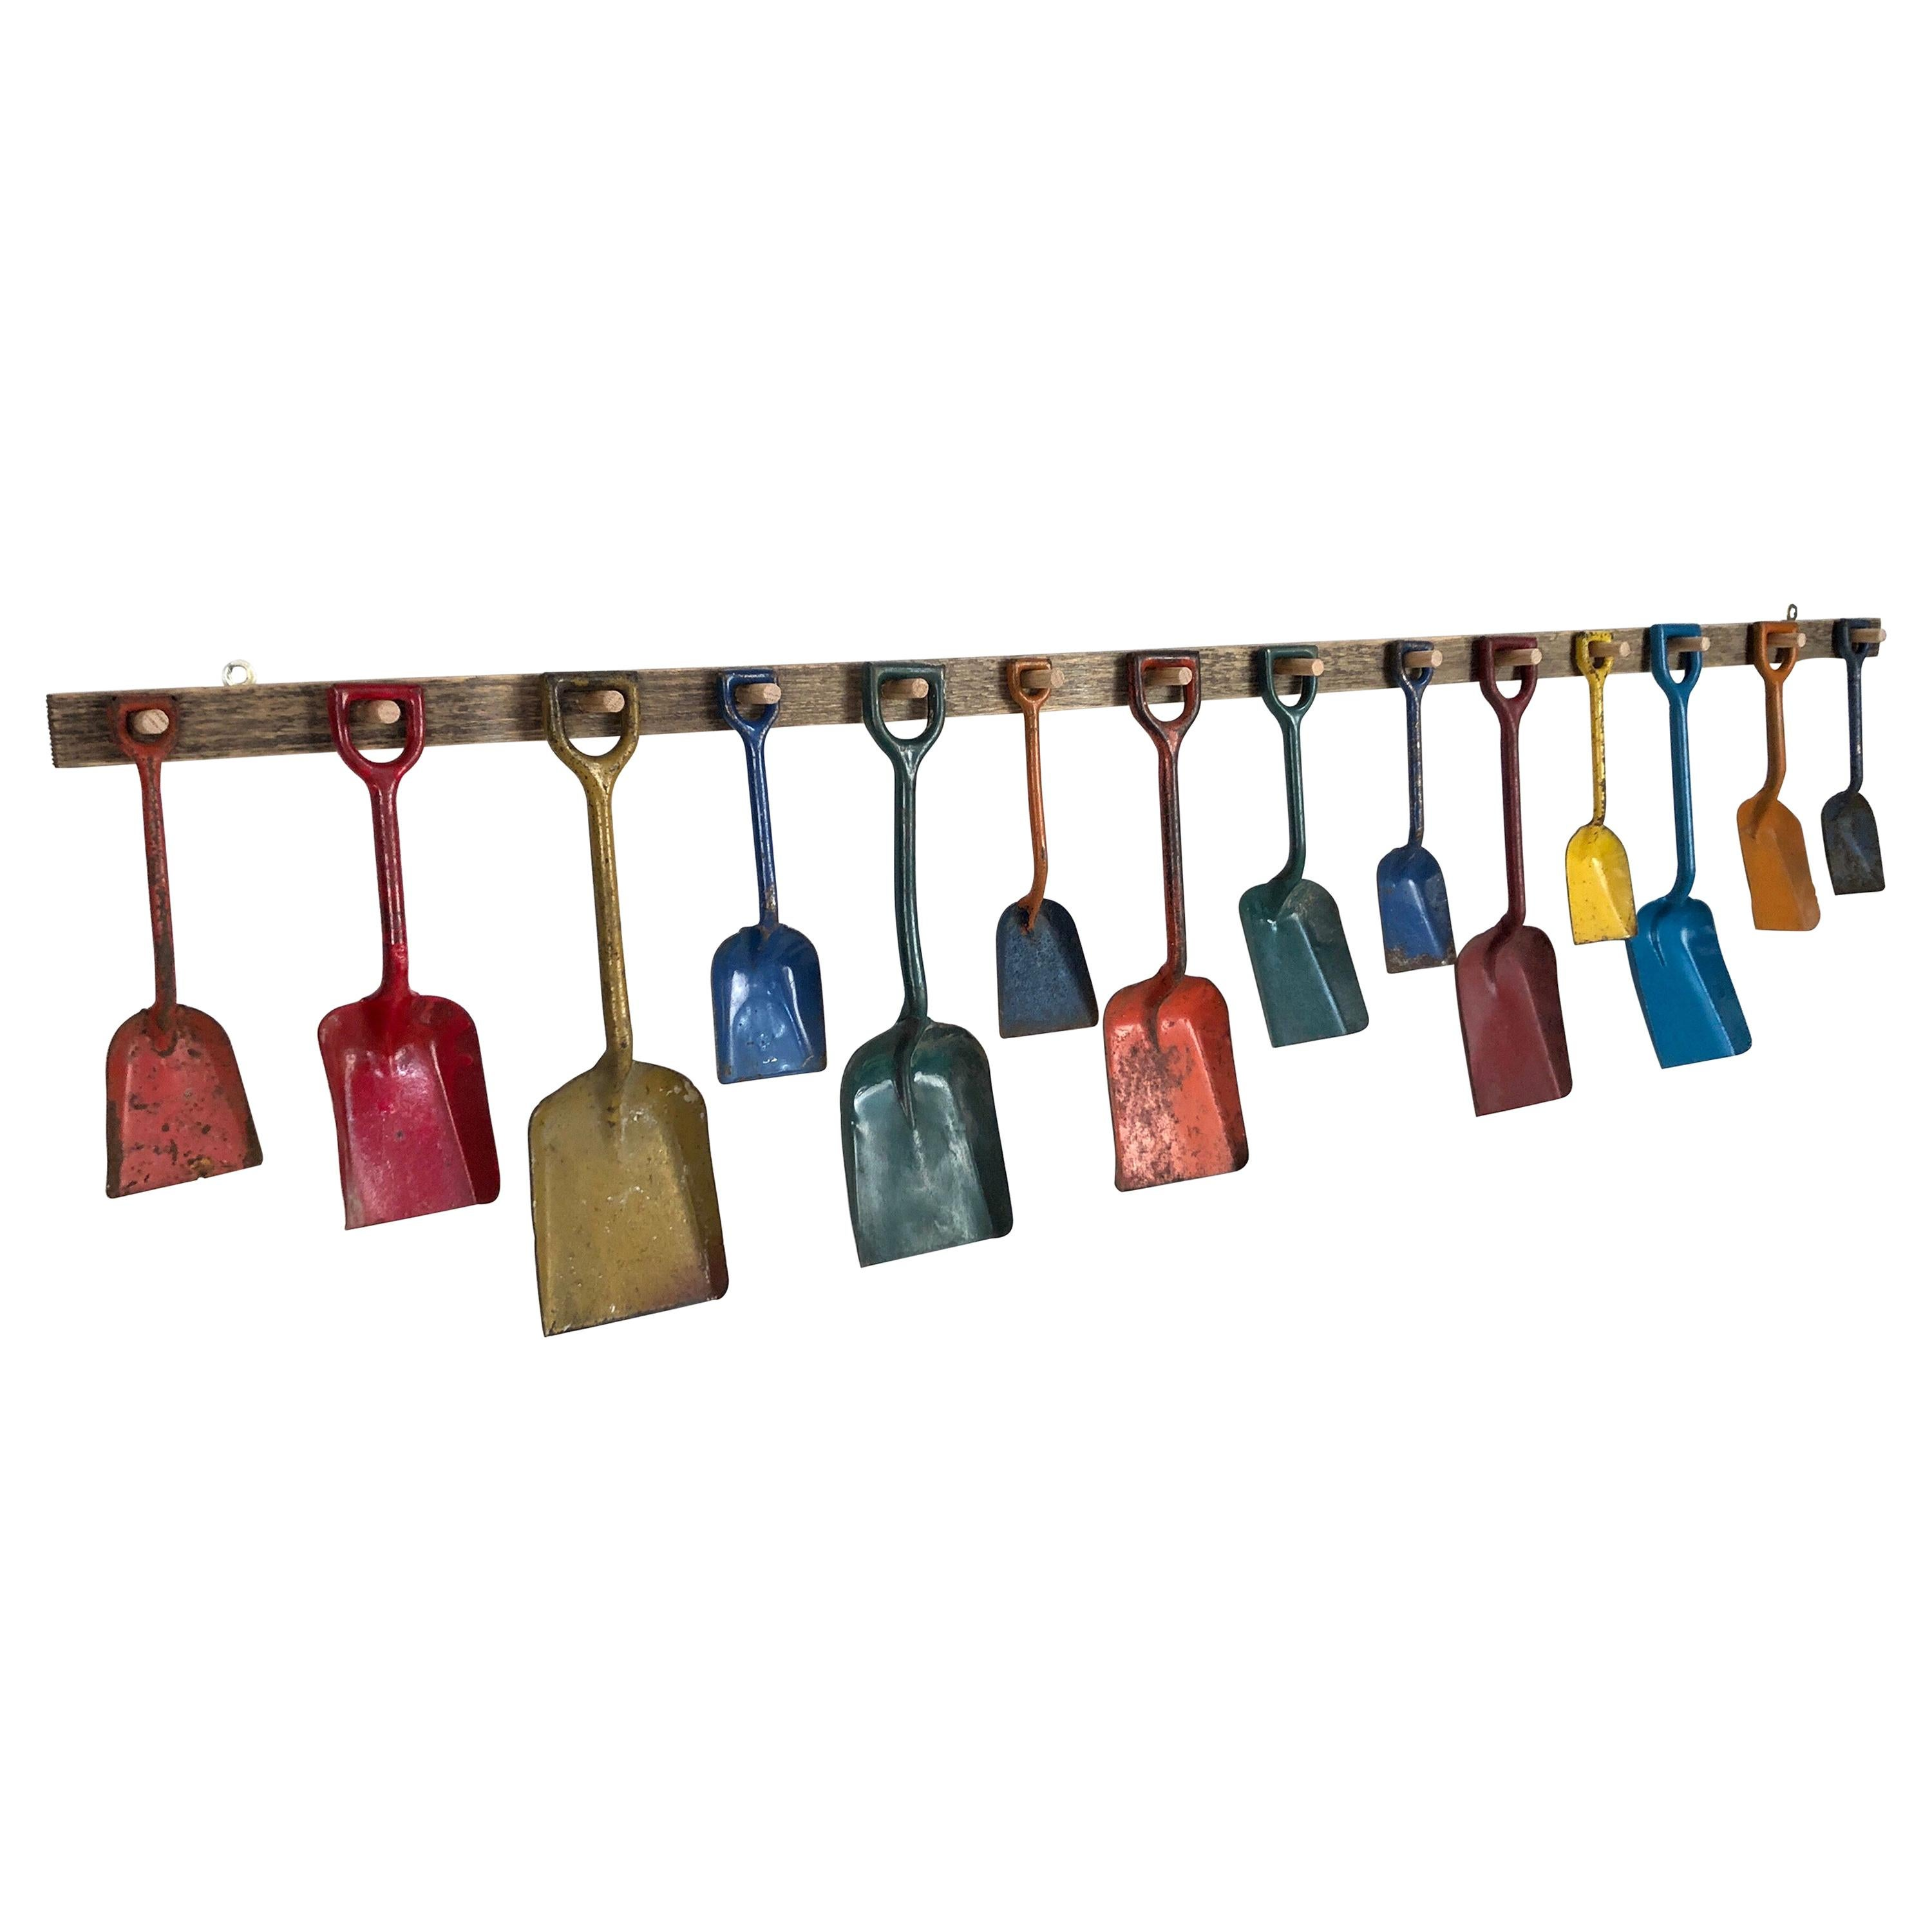 Custom Mounted Antique Child's Colorful Metal Beach Shovel Display